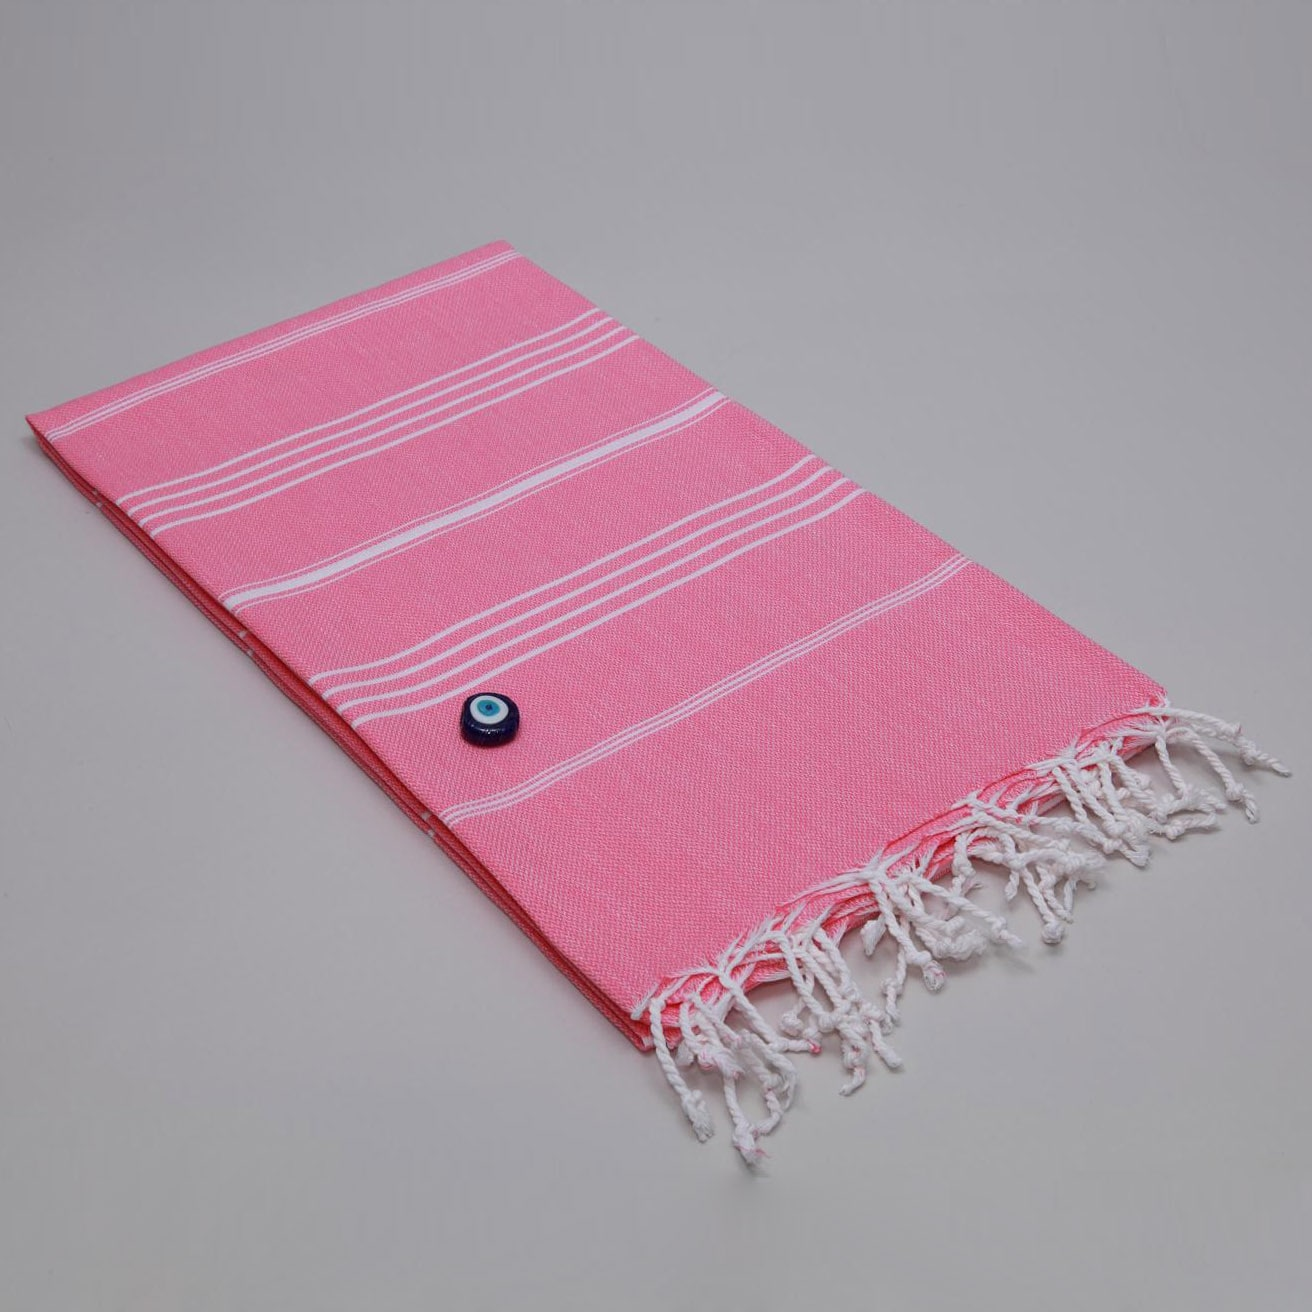 Authentic Fouta Pink Turkish Cotton Towel